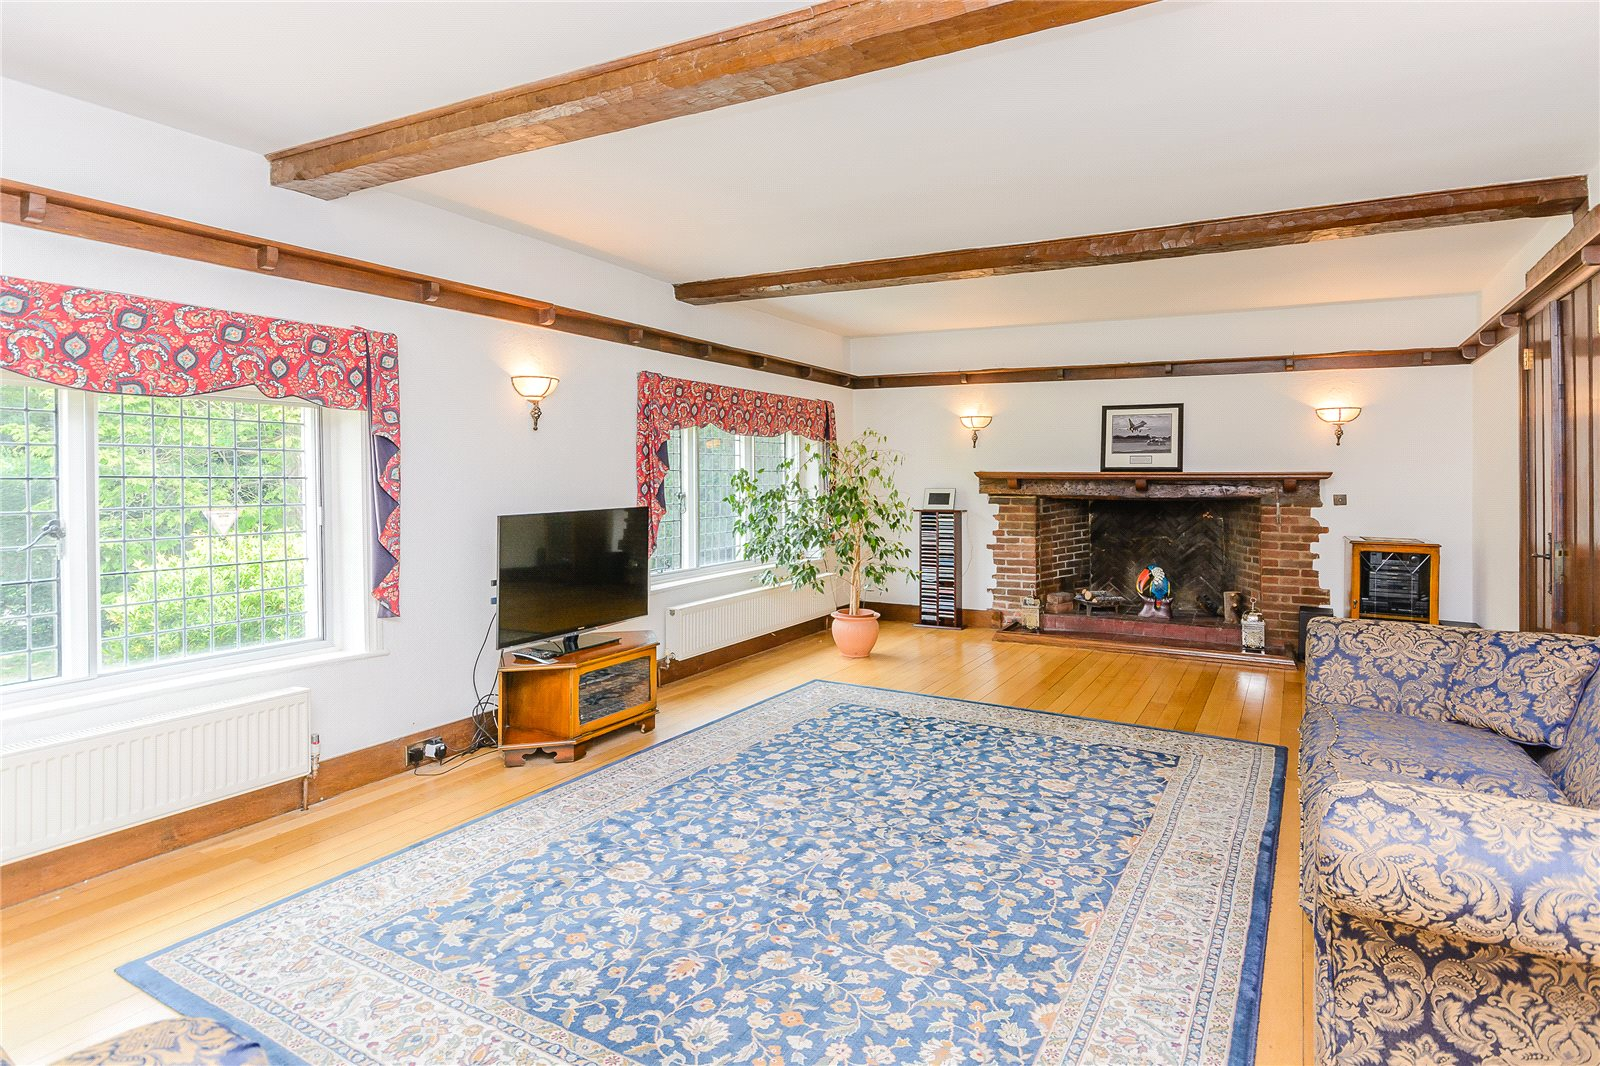 Additional photo for property listing at Claydon Lane, Chalfont St Peter, Gerrards Cross, Buckinghamshire, SL9 Gerrards Cross, Inglaterra